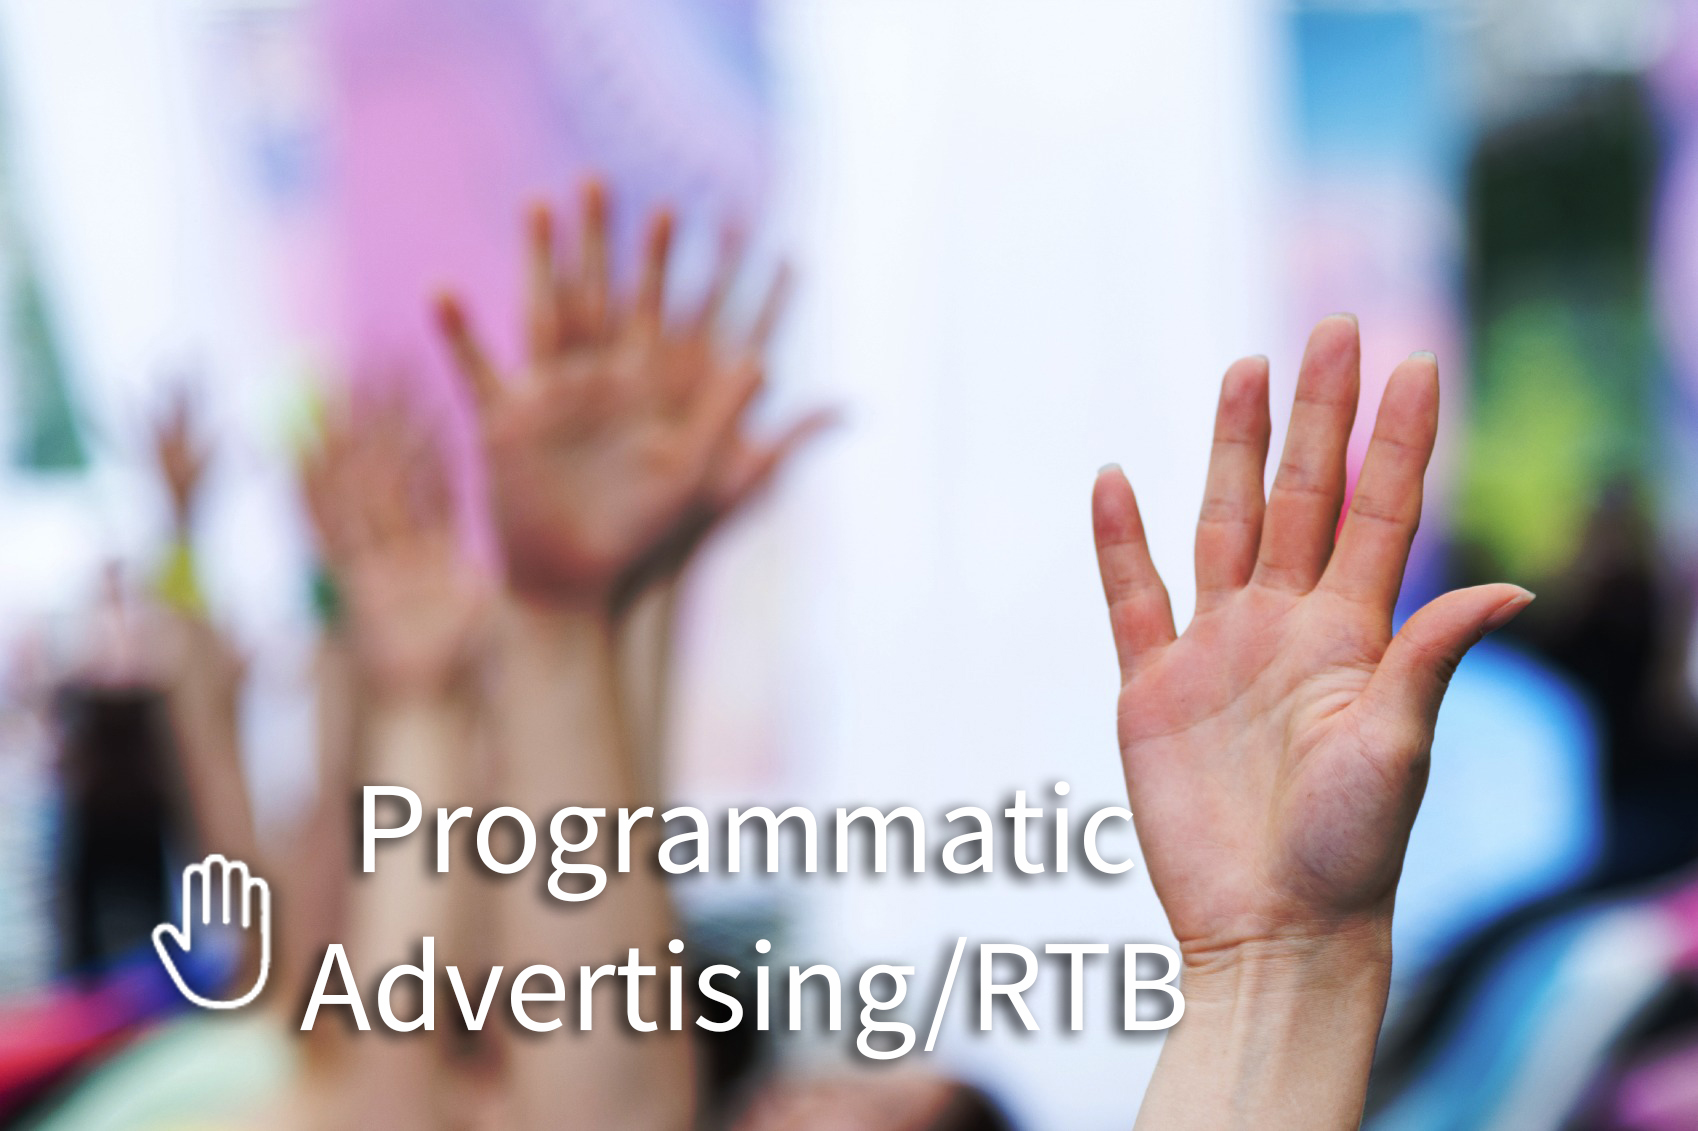 Programmatic Advertising & RTB